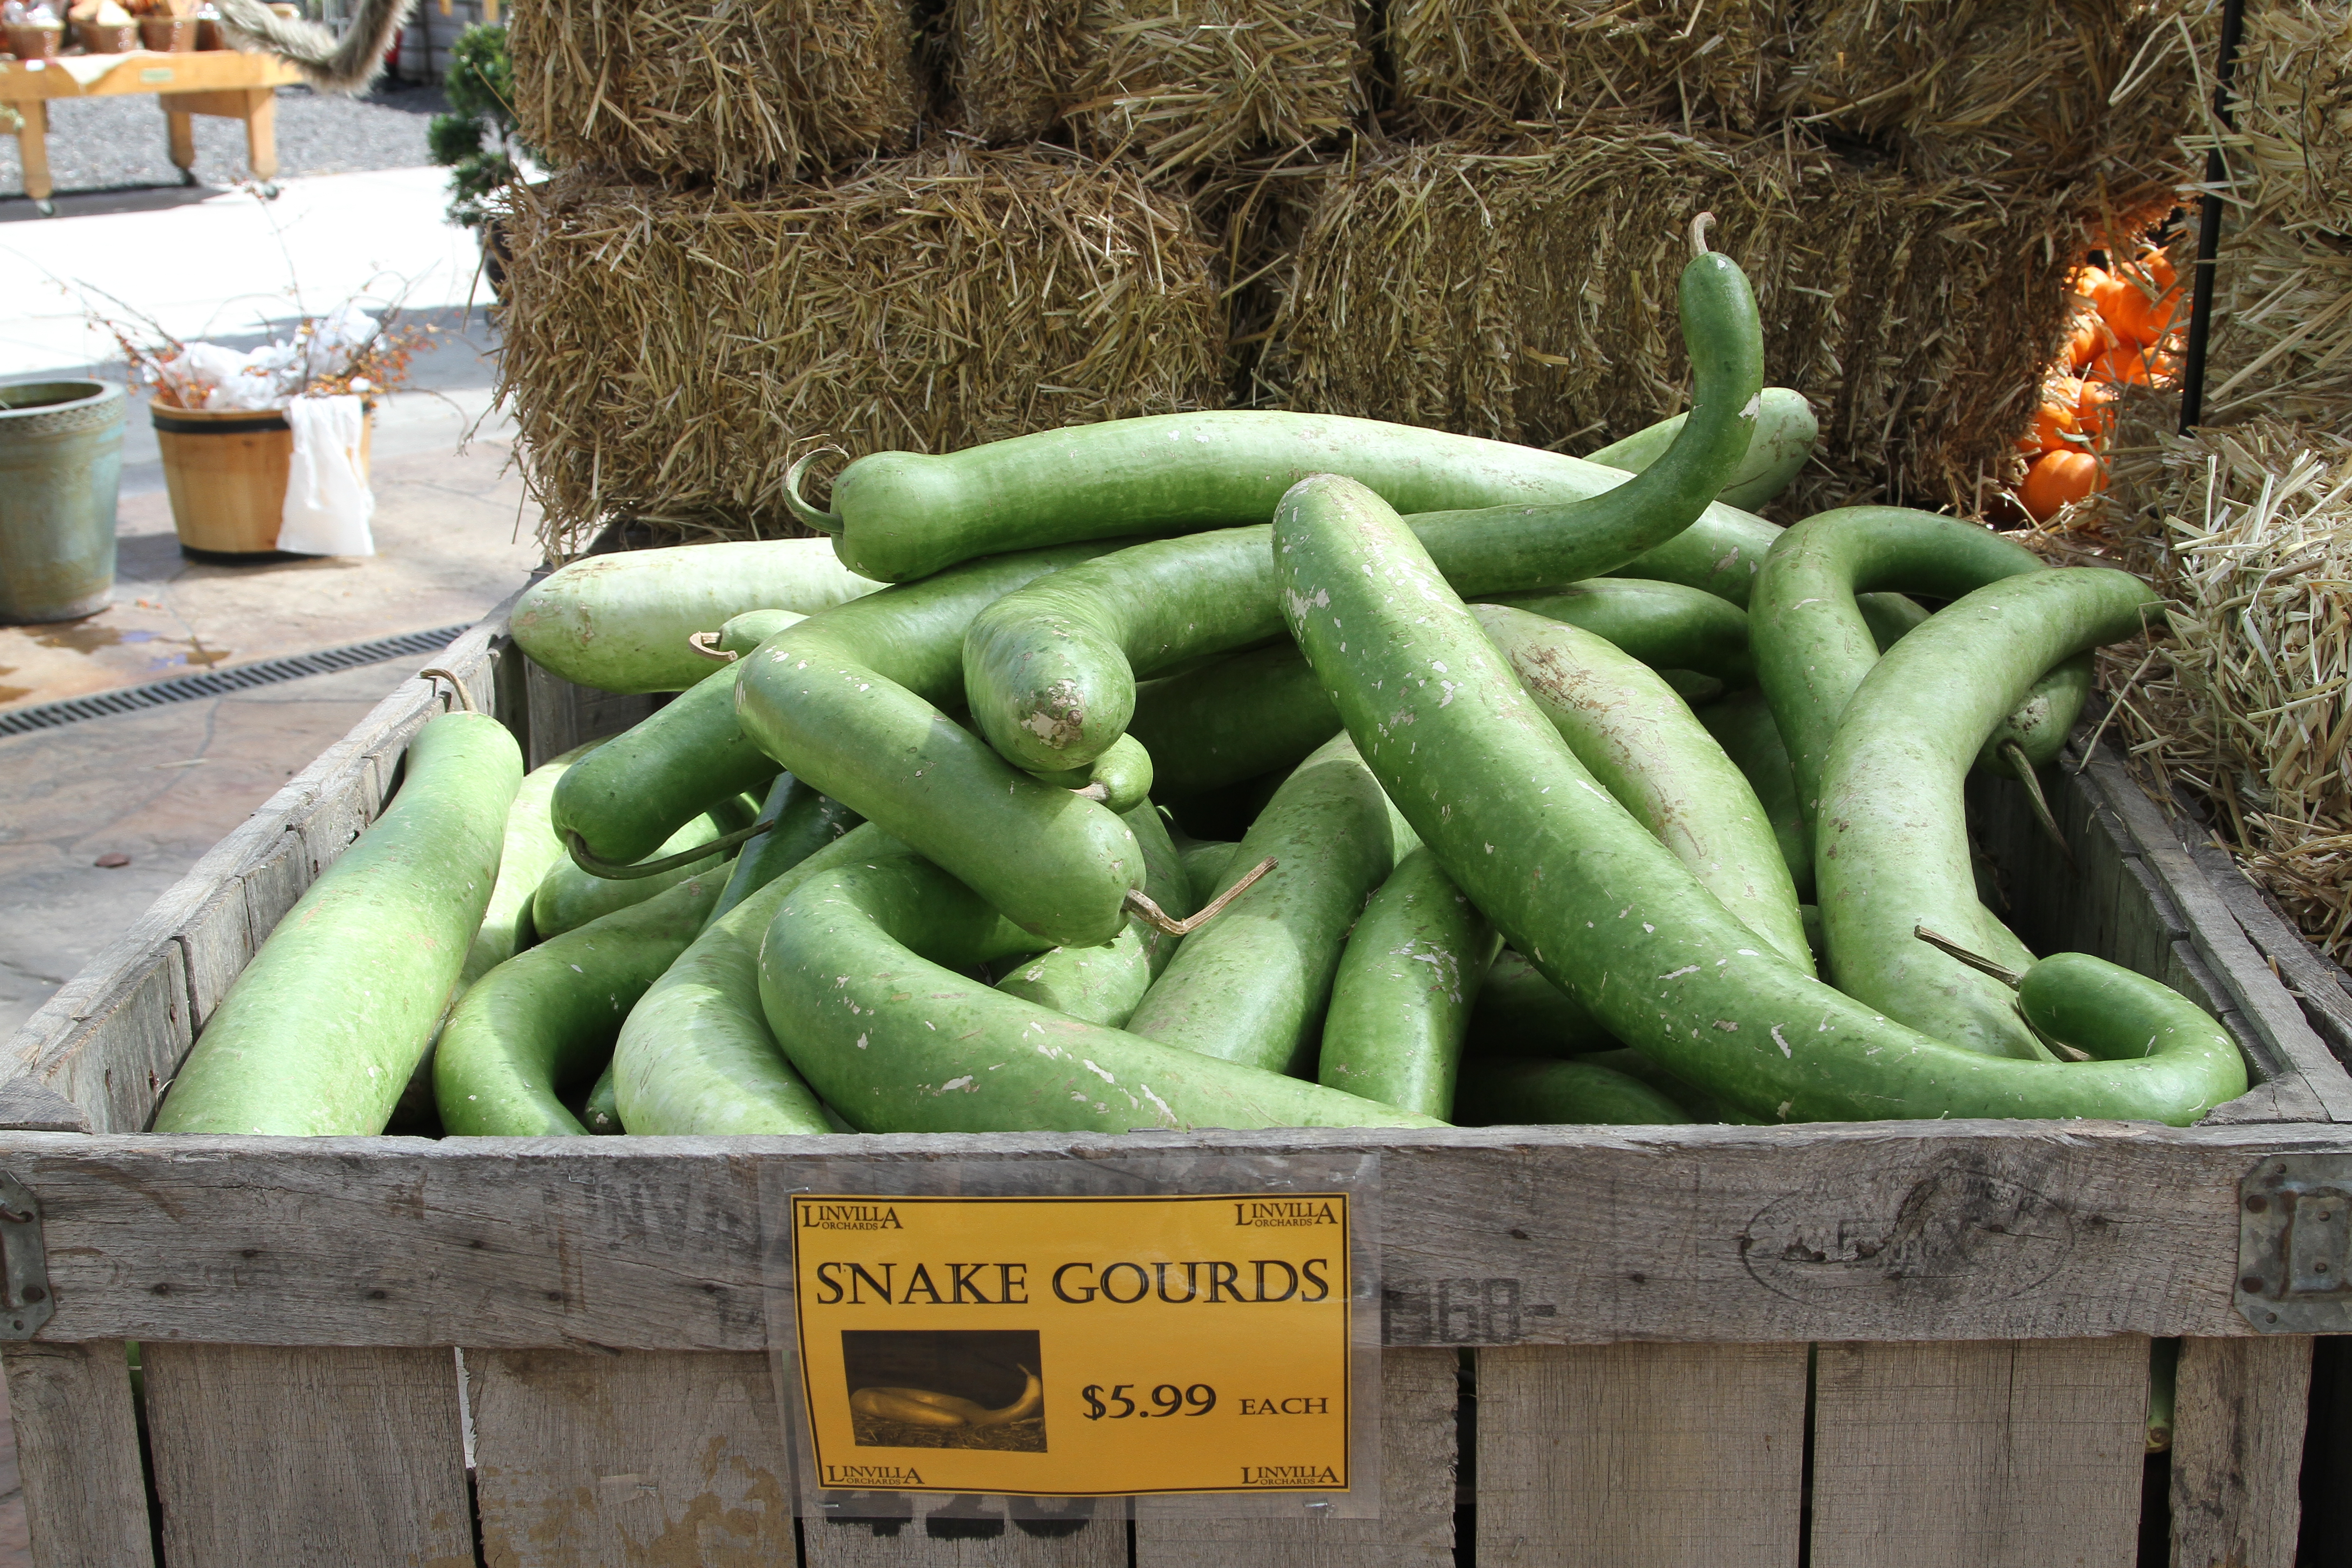 Unlike other vegetables and